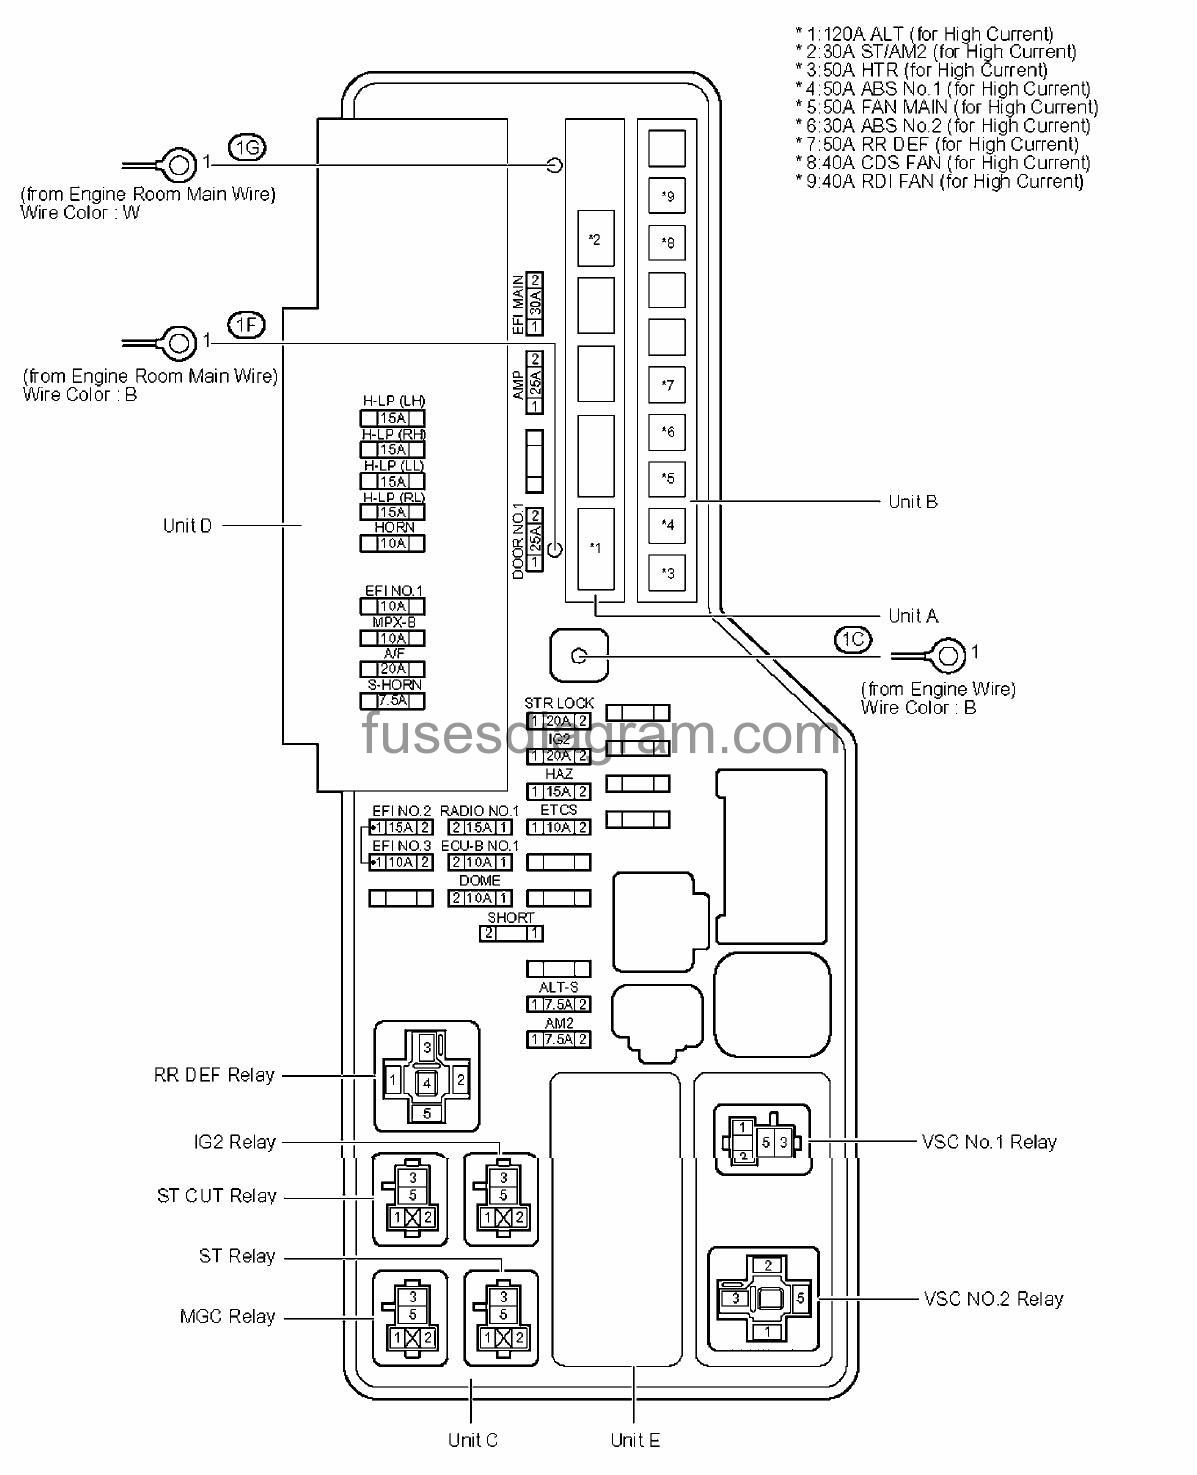 2003 Camry Fuse Diagram Wiring Diagram Fix Fix Lechicchedimammavale It